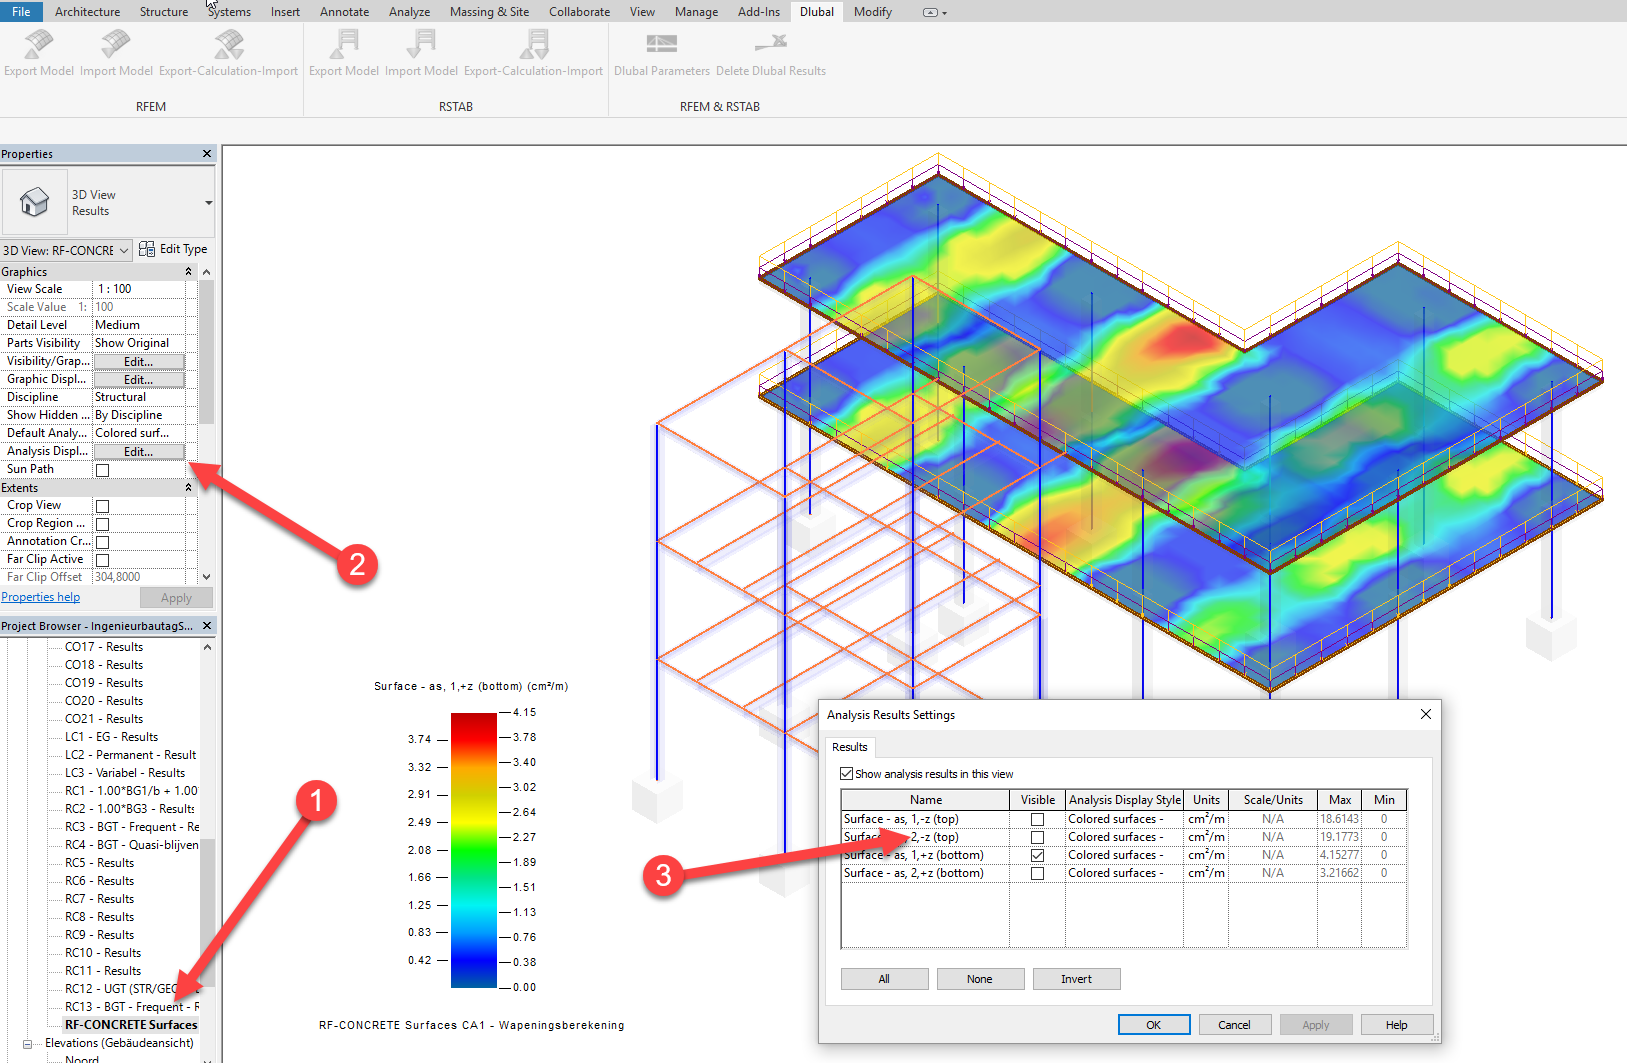 Wapening berekend in RFEM van betonvlak controleren in REVIT